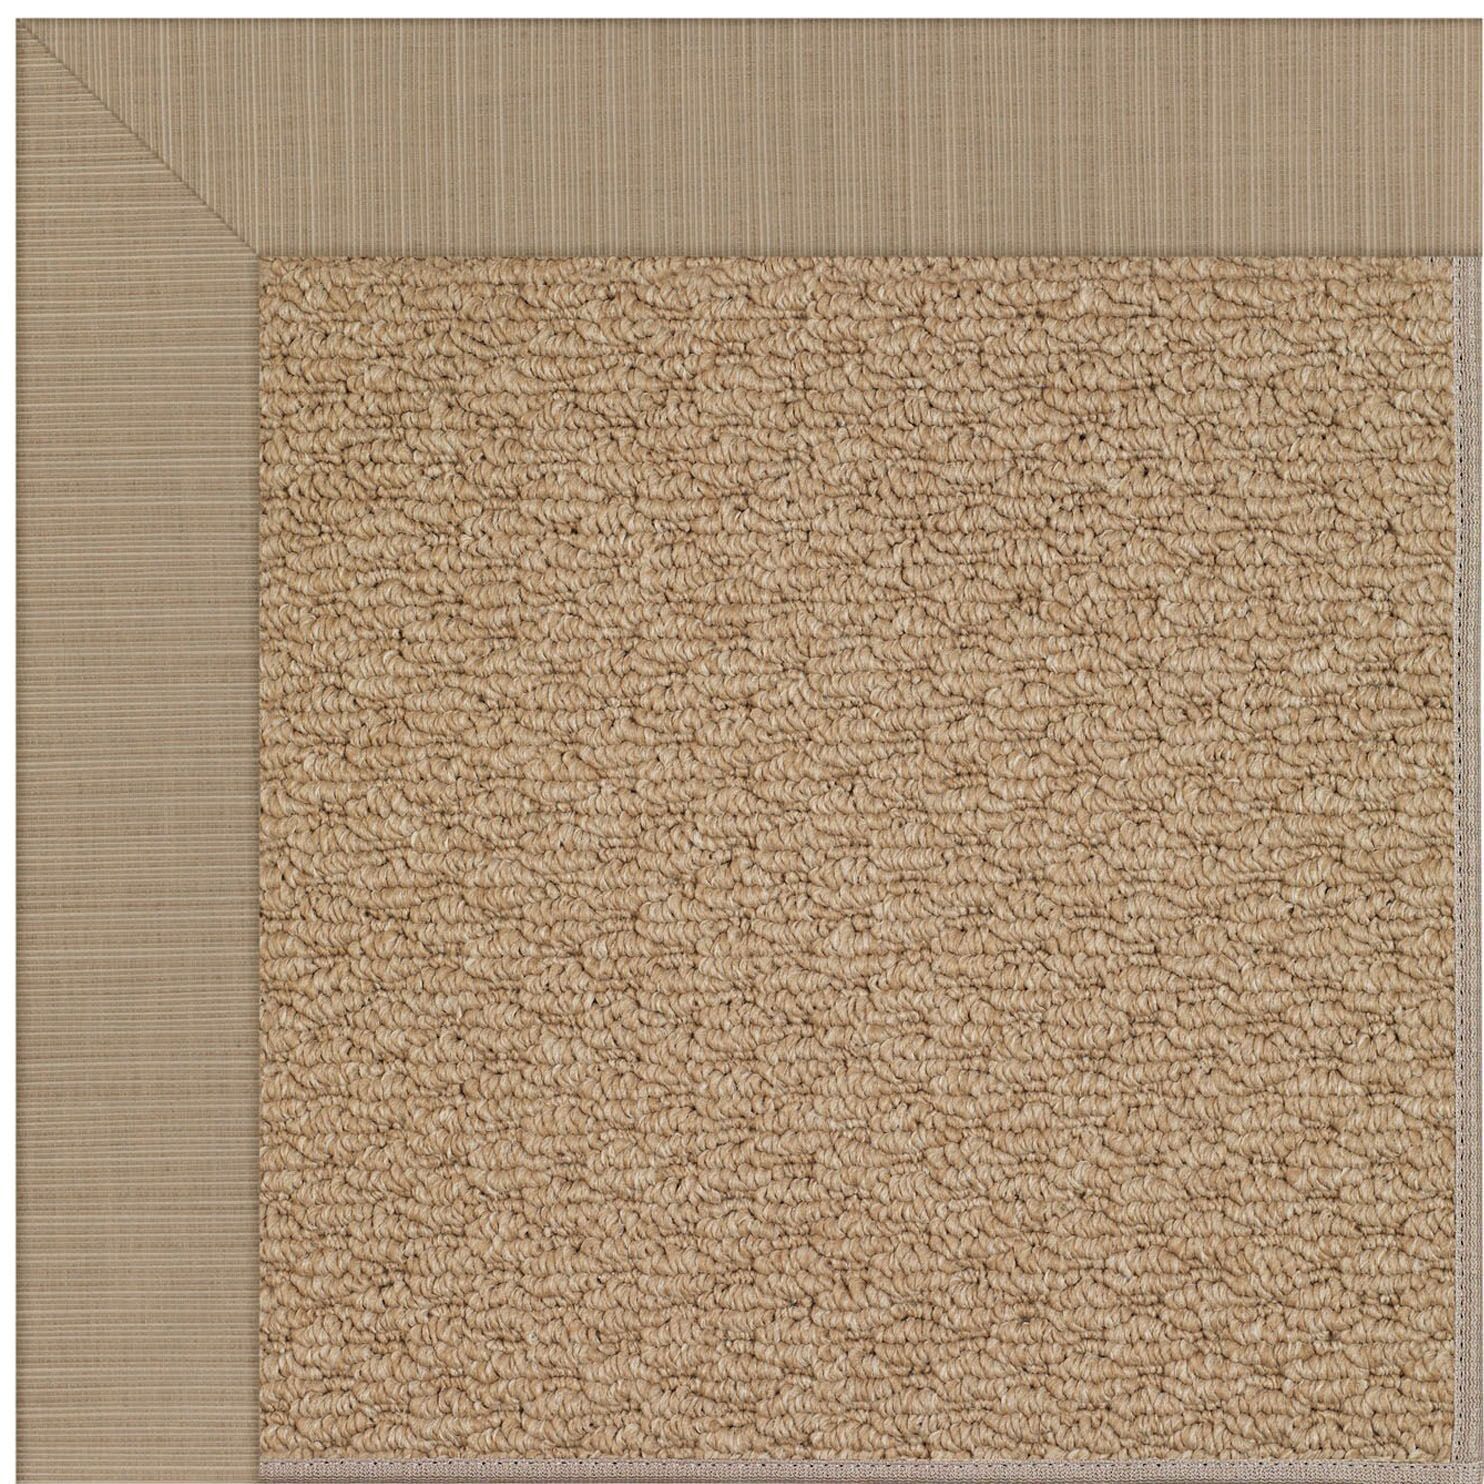 Lisle Brown Indoor/Outdoor Area Rug Rug Size: Rectangle 2' x 3'